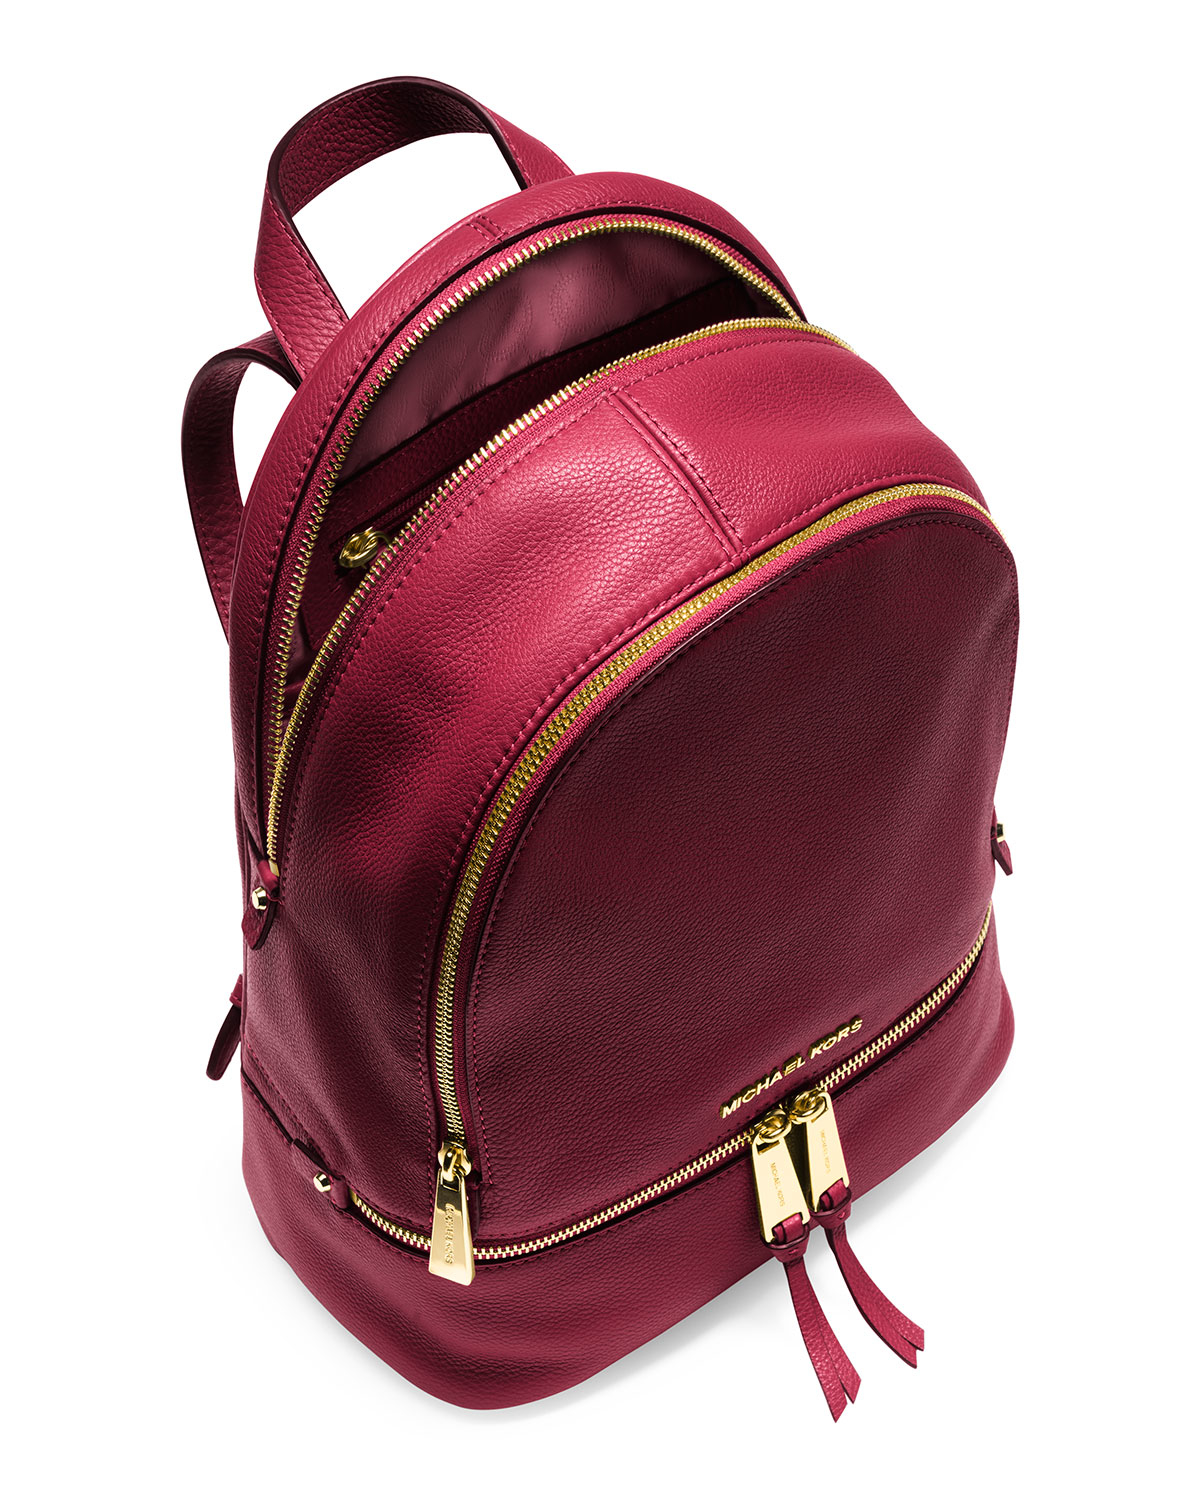 b3b01622a64e MICHAEL Michael Kors Rhea Small Leather Zip Backpack in Red - Lyst